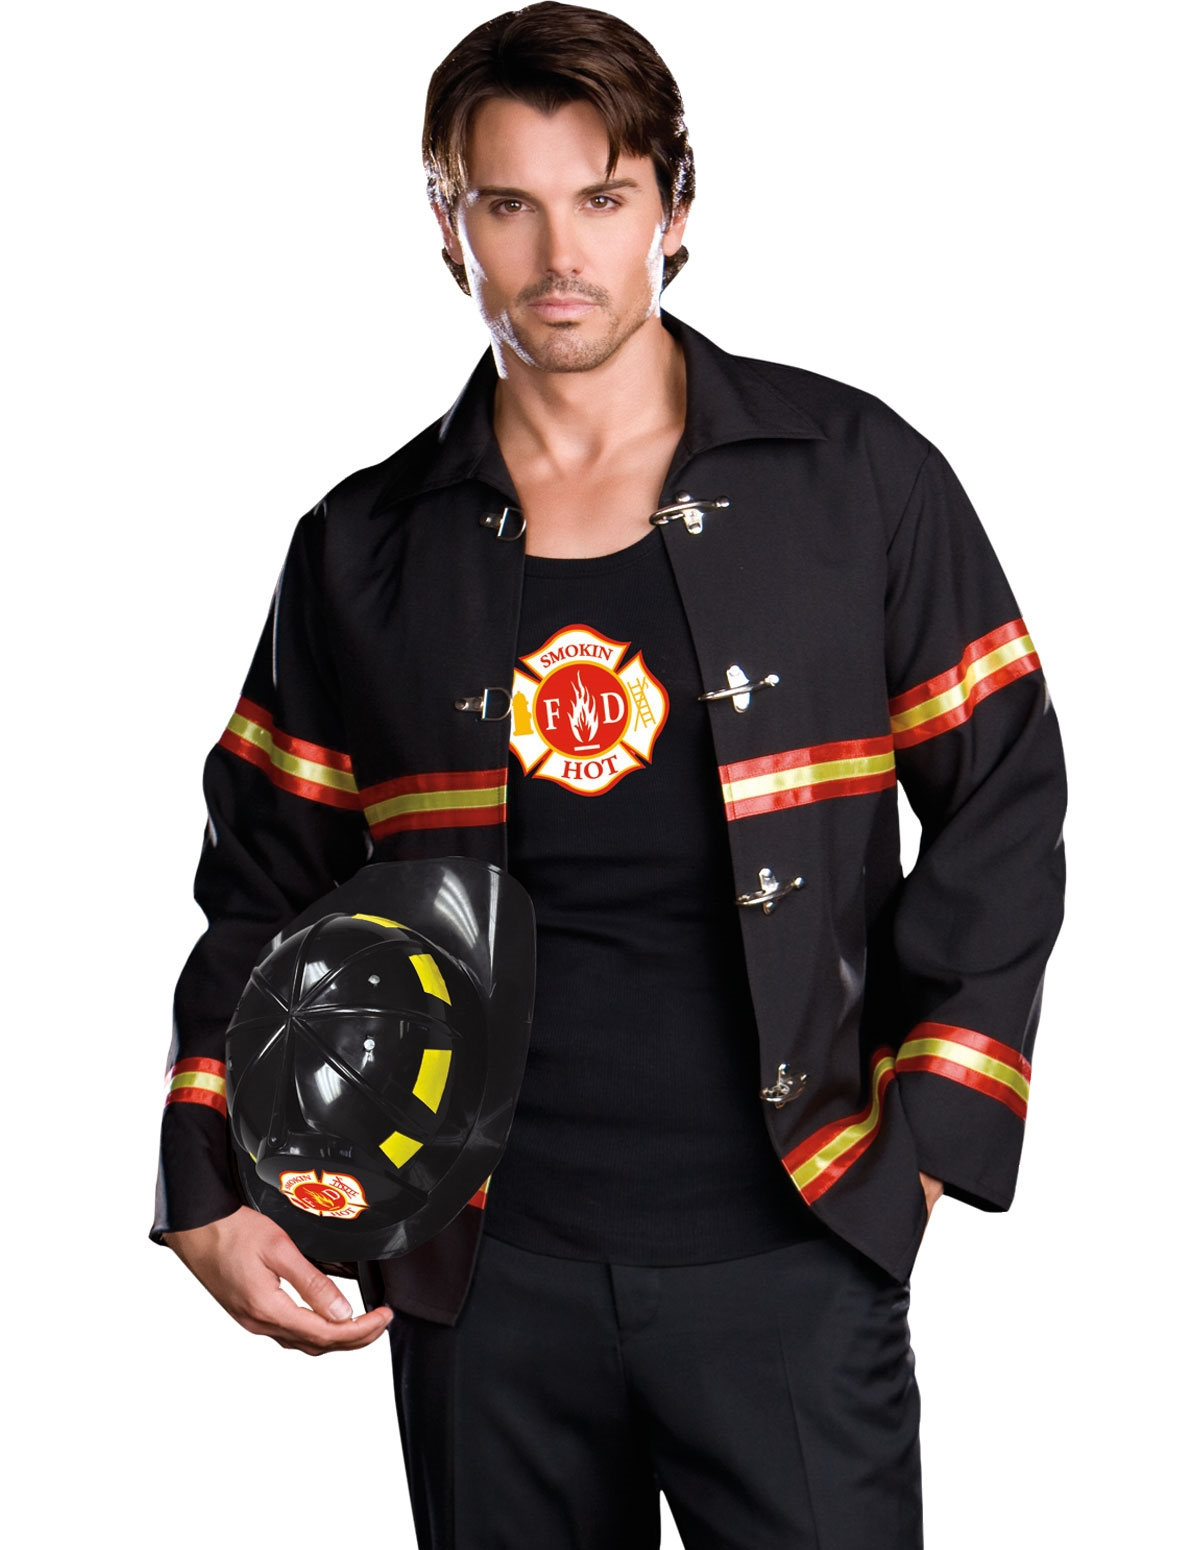 Smokin Hot Fireman